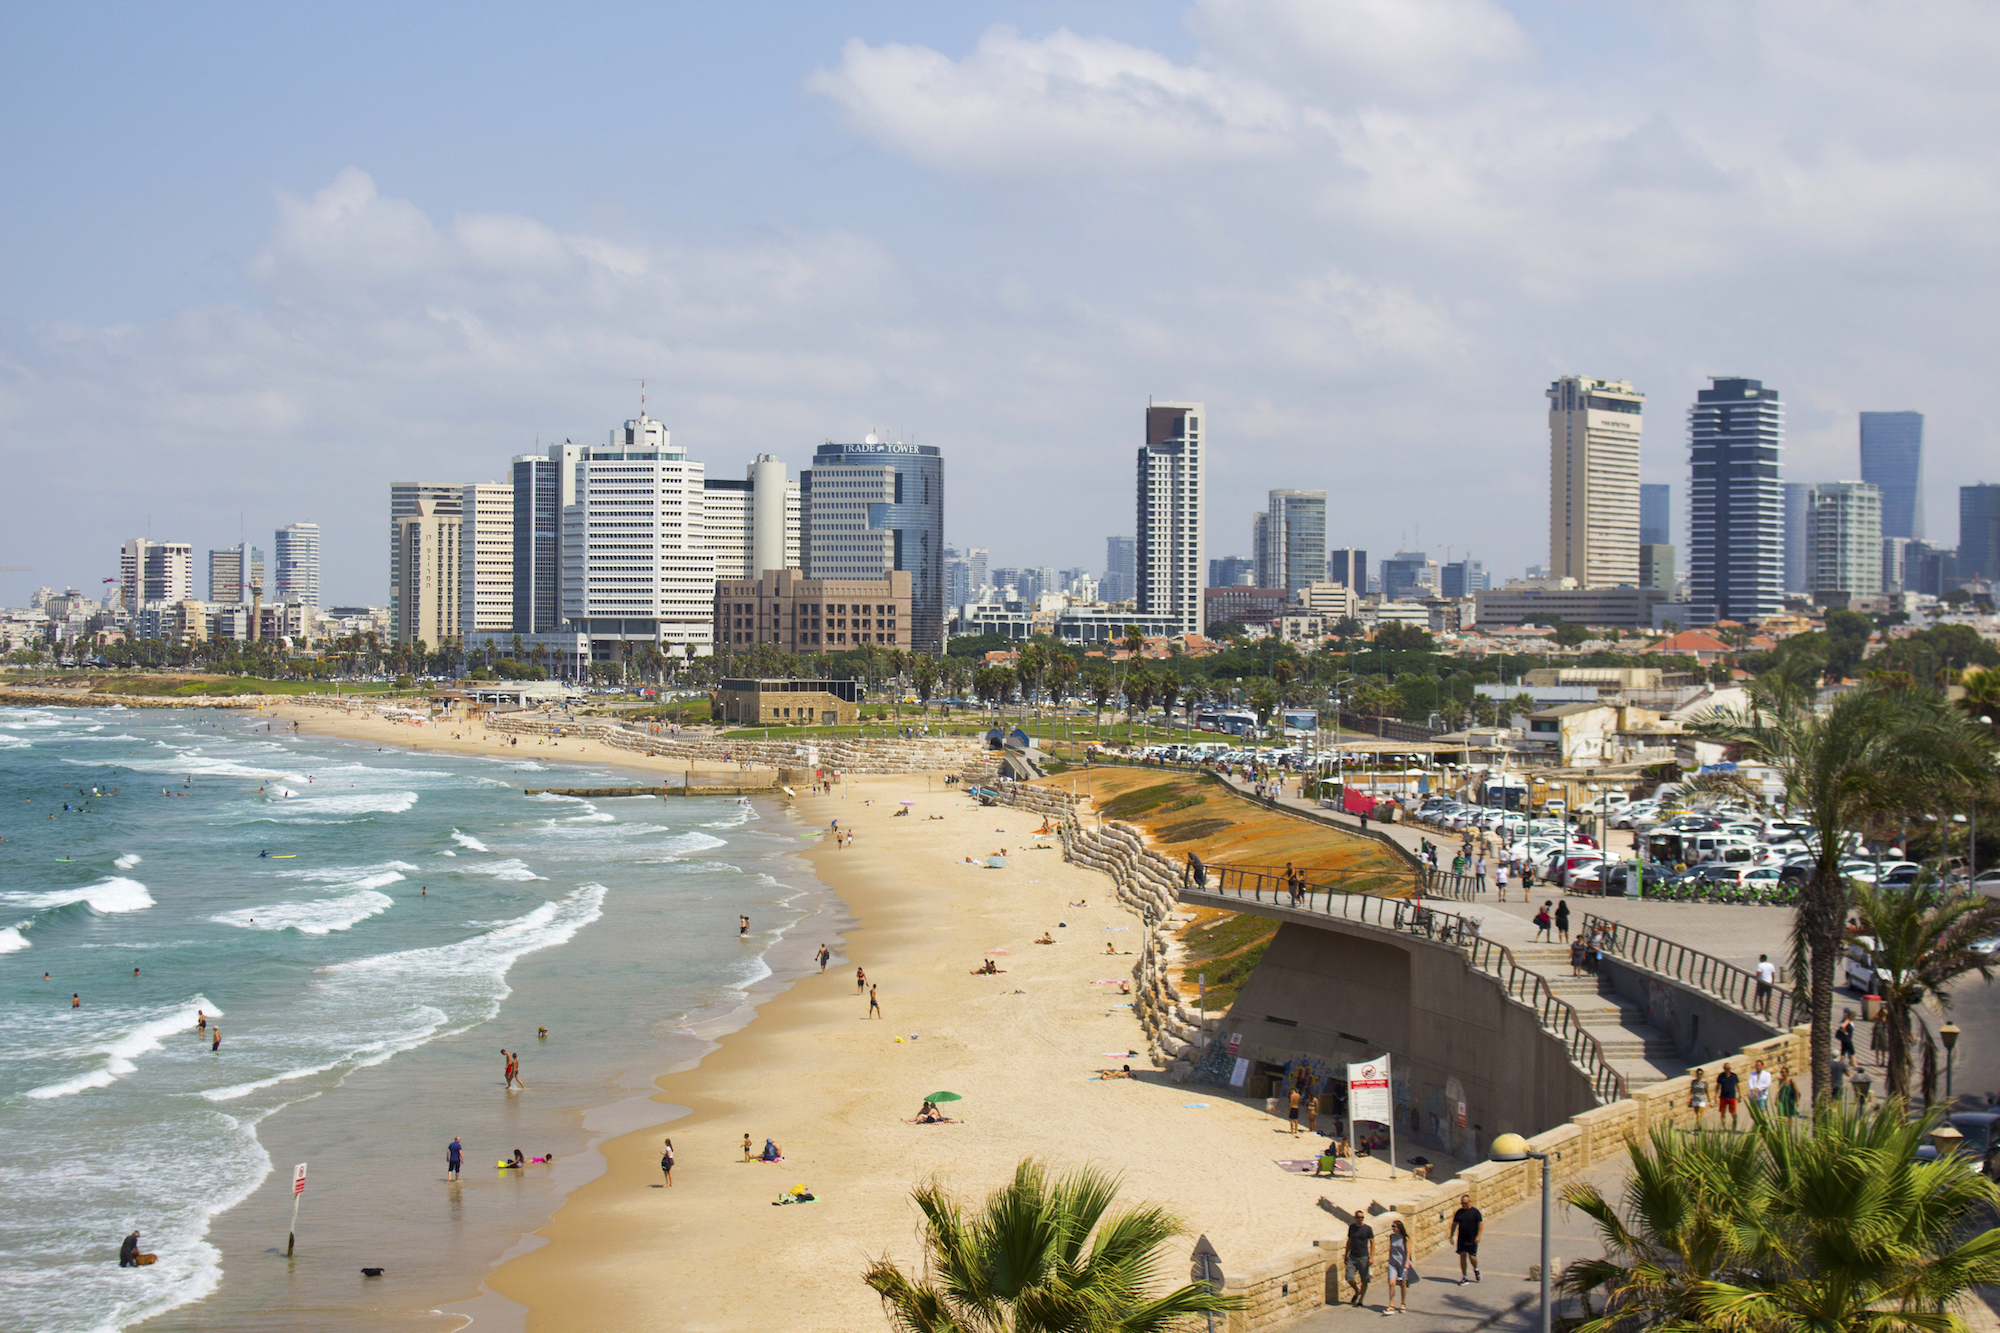 An overlook of the beach in Tel Aviv, Israel. #Travel photography by Geena Matuson @geenamatuson #thegirlmirage.